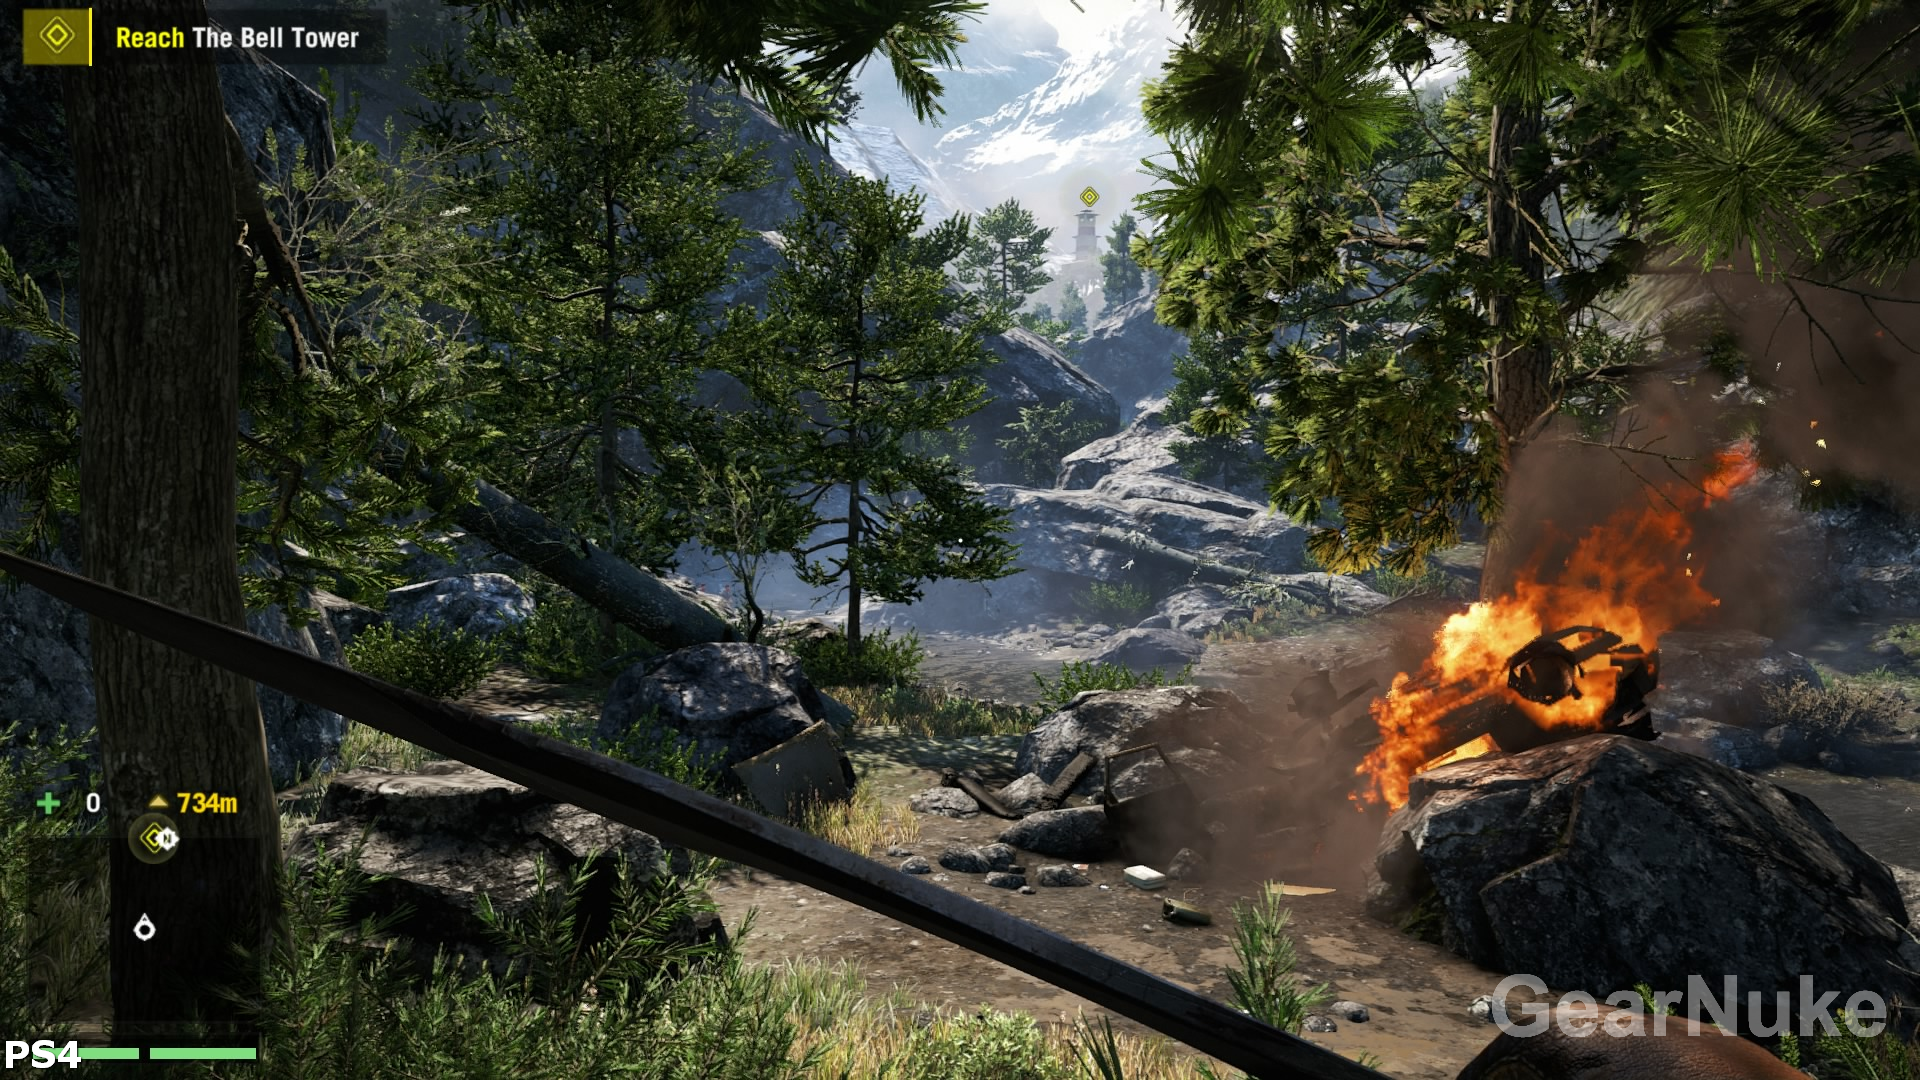 Far Cry 4 Ps3 Vs Ps4 Vs Pc Ultra Image Comparison Shows A Solid Effort On All Platforms